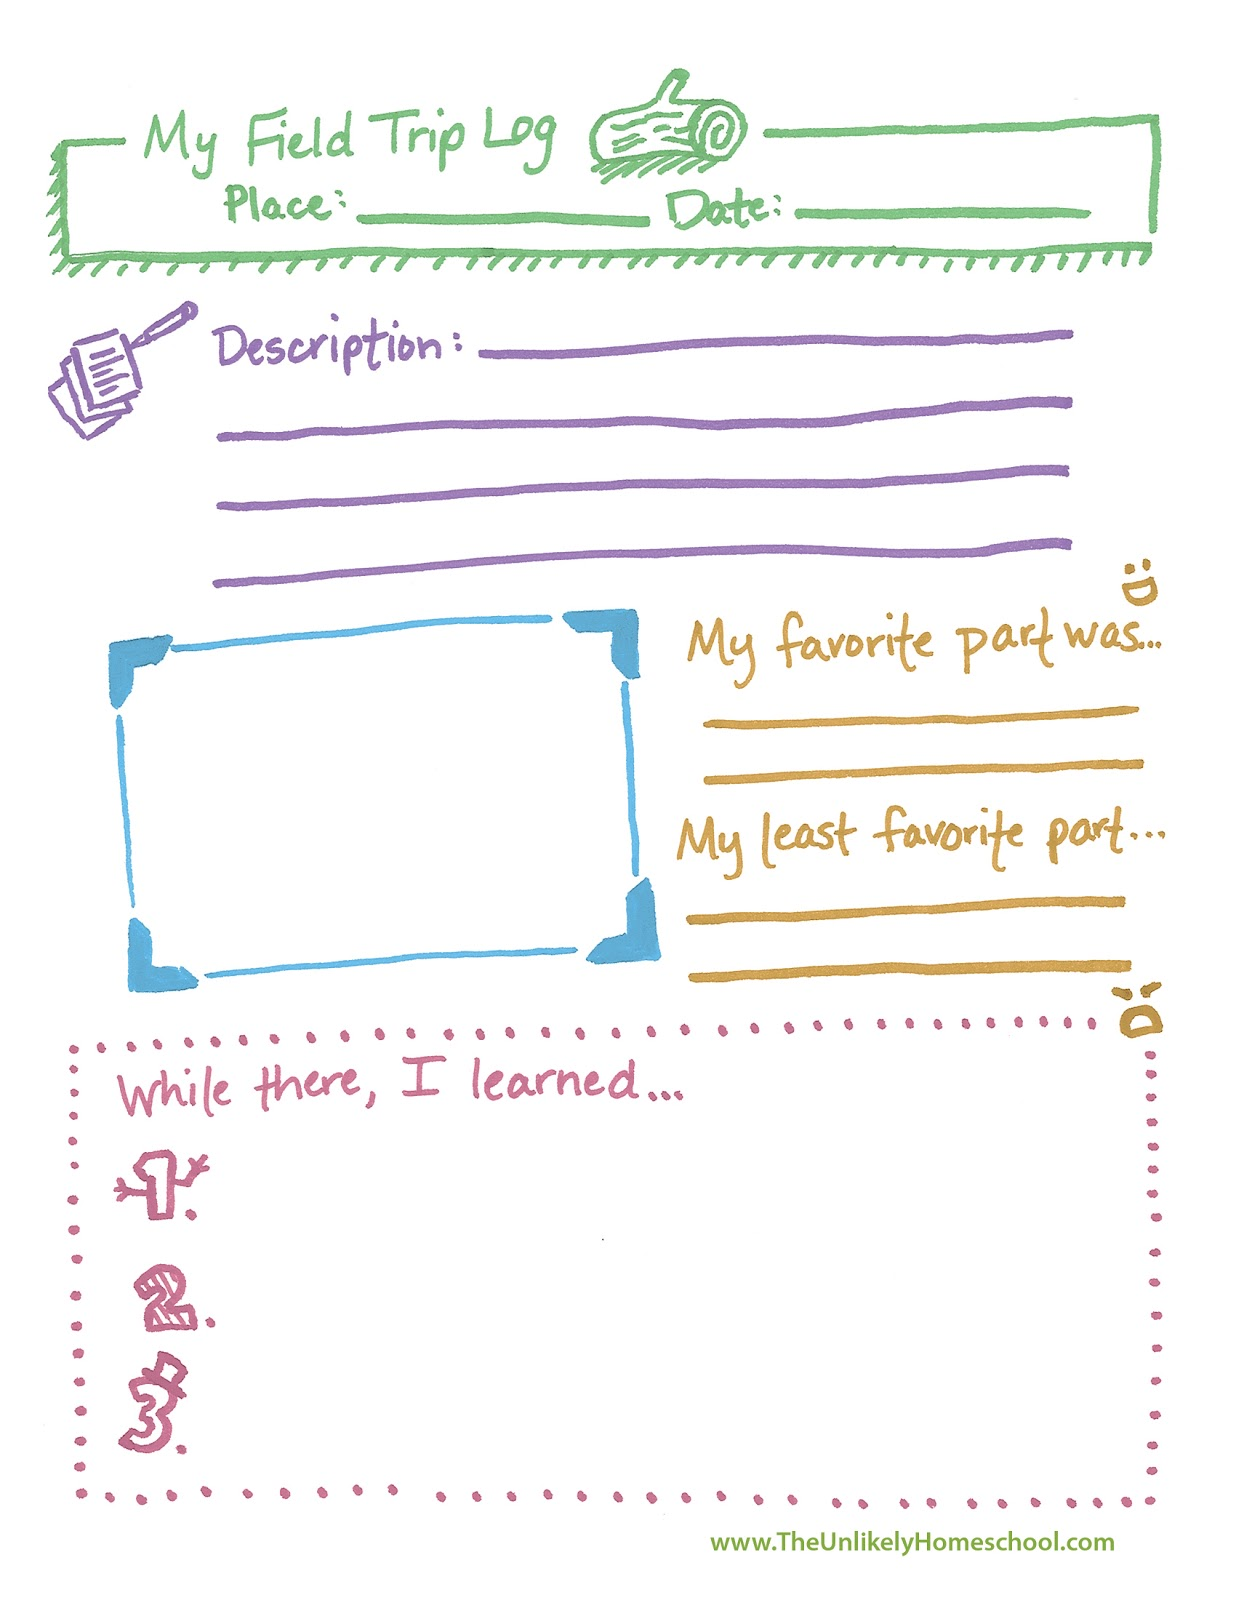 the unlikely homeschool field trip log printable. Black Bedroom Furniture Sets. Home Design Ideas